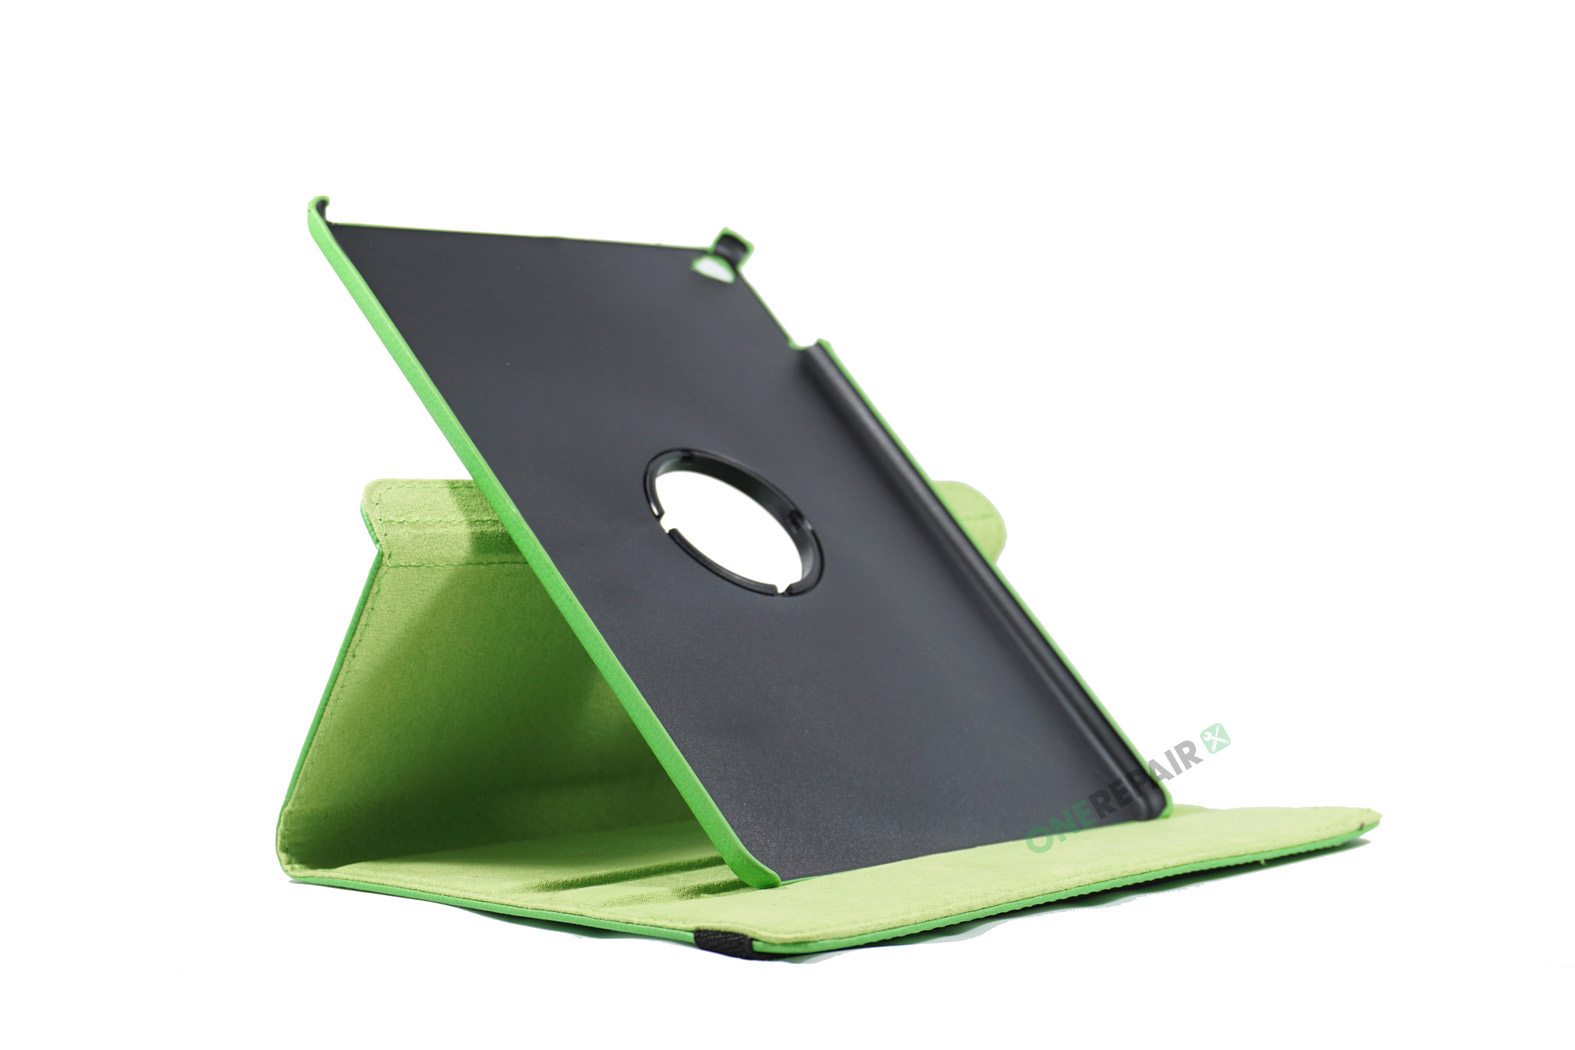 351018_iPad_Air_A1474_A1475_A1476_Flipcover_Cover_Groen_OneRepair_00005